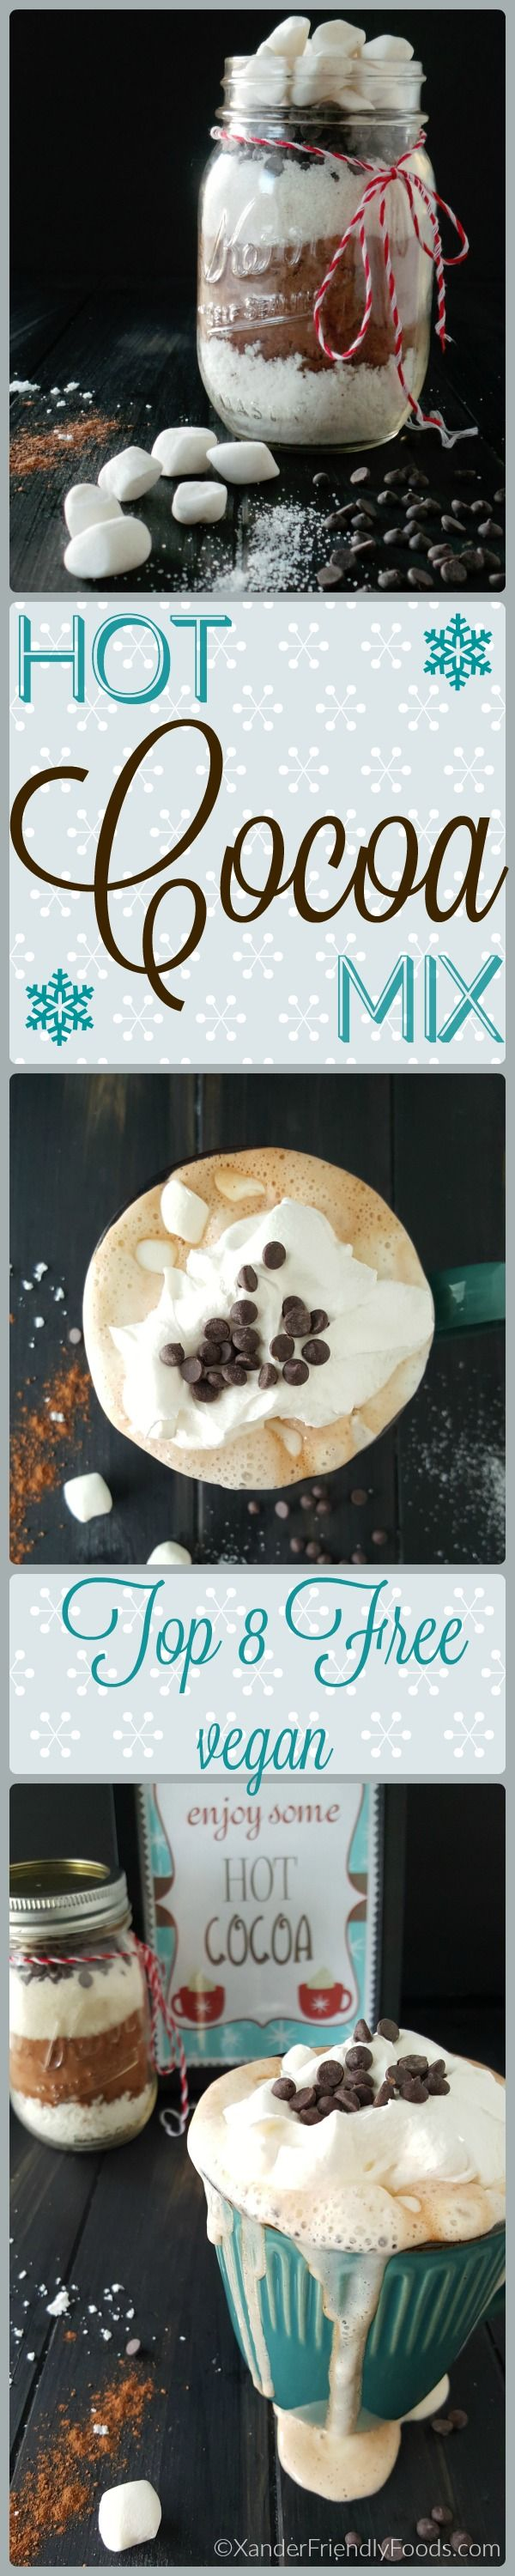 Deliciously Vegan, Hot Cocoa Mix (GF,NF too) to keep you warm this winter. Recipe for 1 person or make the mix which serves 10.